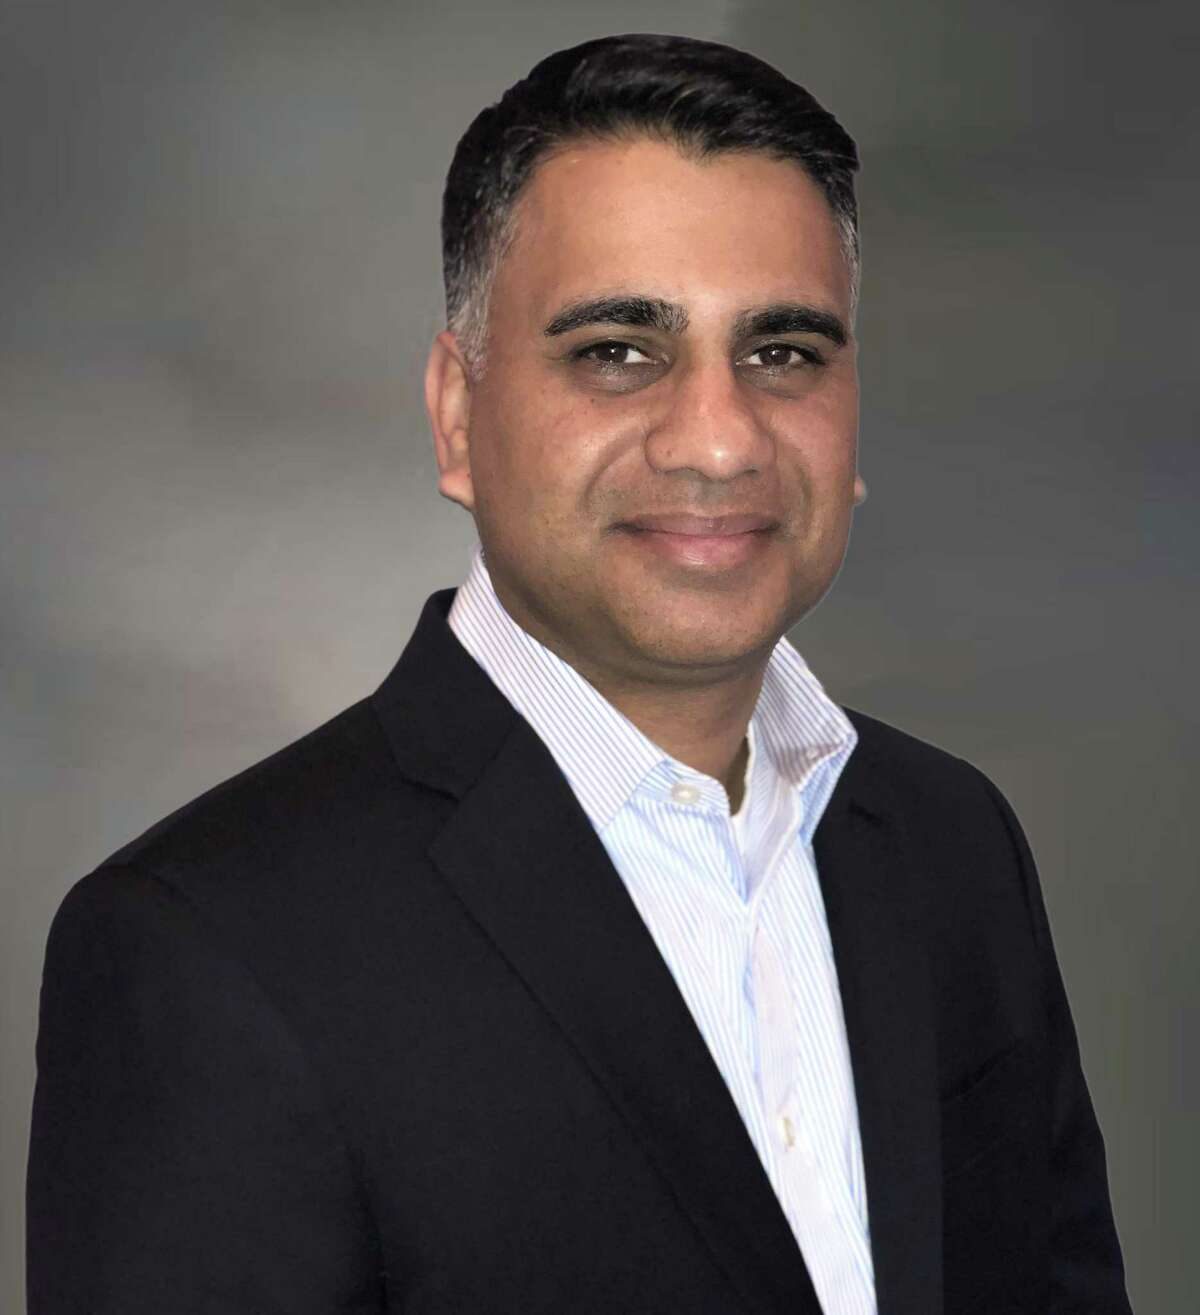 Imran Alibhai, Tvardi Therapeutics, has been appointed as chief executive officer and a member of the board of directors of the clinical-stage biopharmaceutical company. Tvardi is one of four companies to receive a portion of $38.1 million in funding from the Sporos Bioventures investing group.